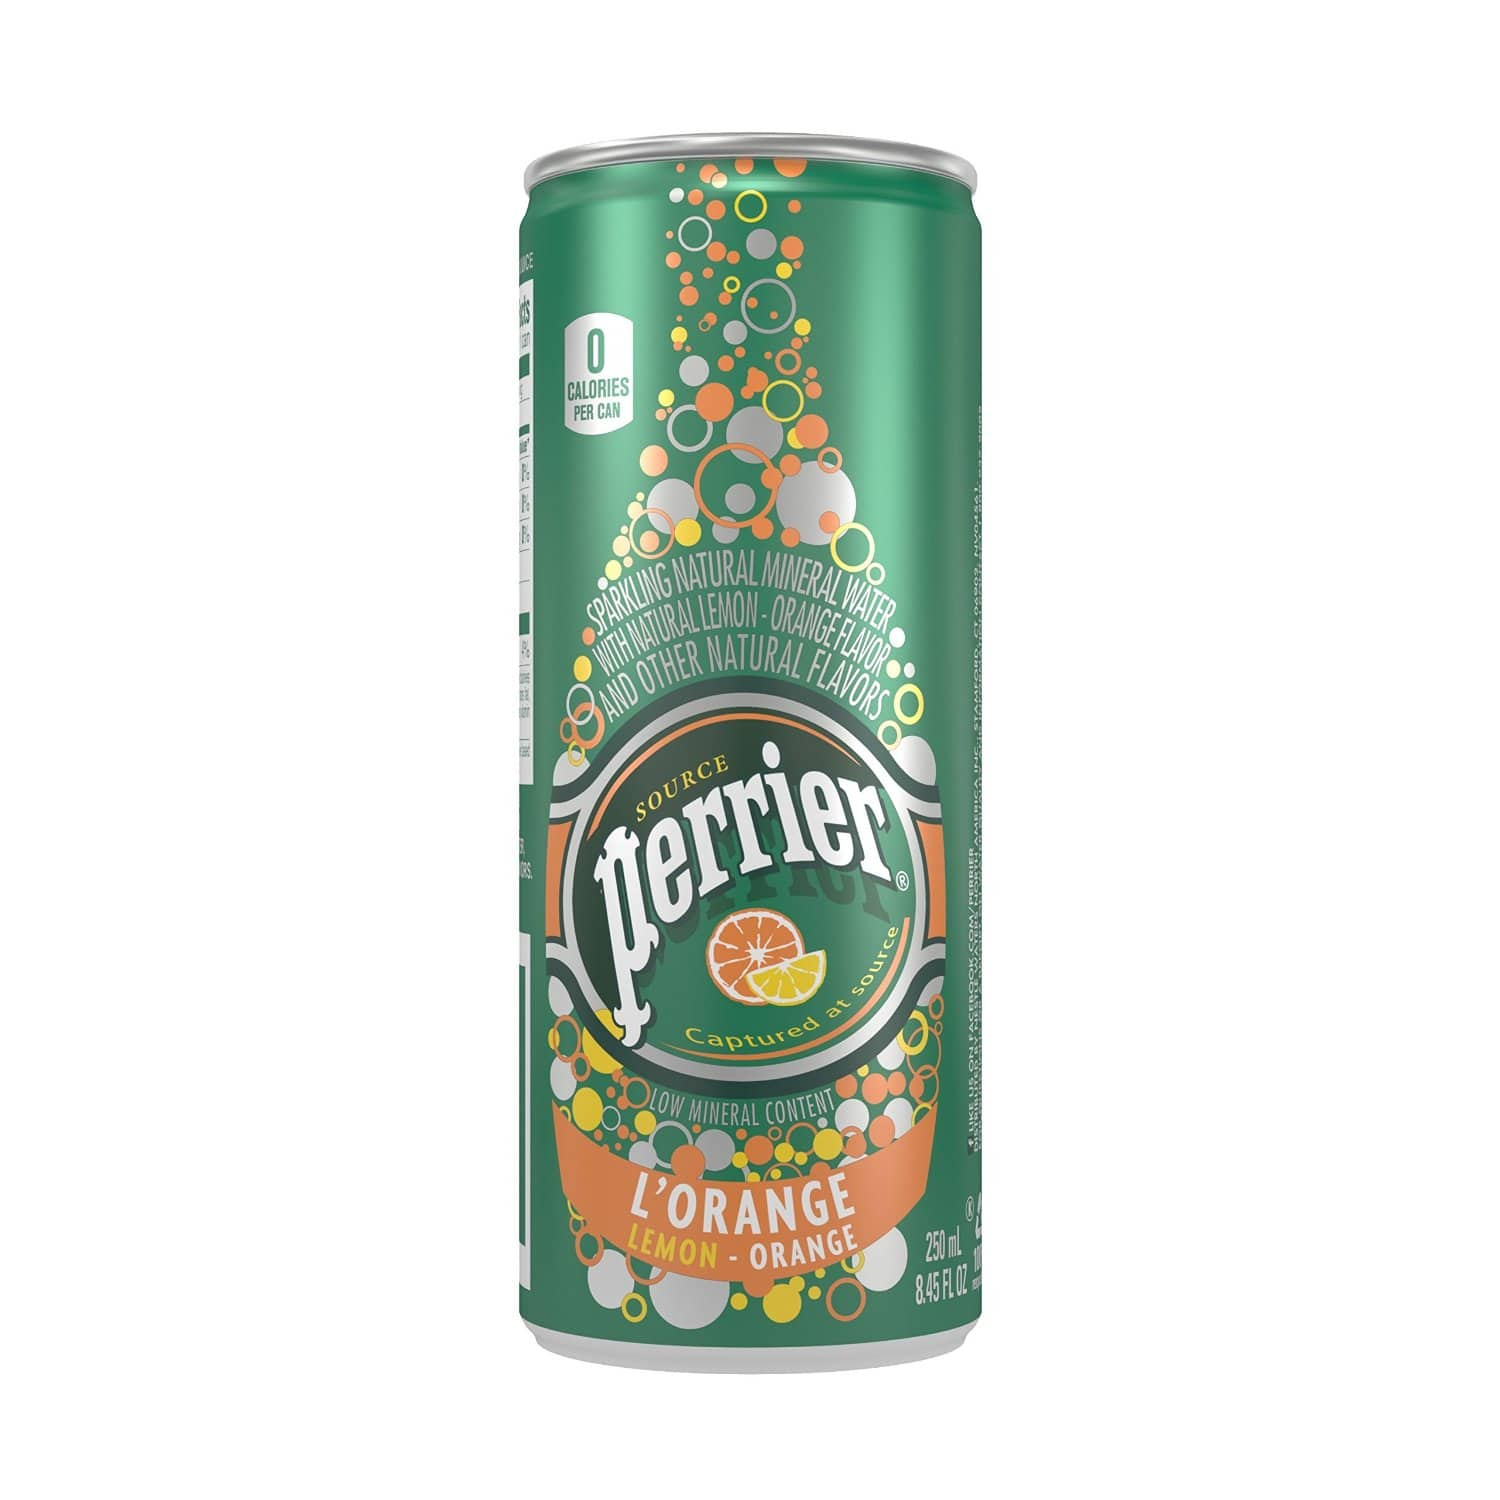 Perrier Sparkling Natural Mineral Water, Lemon Orange, 8.45 Ounce (Pack of 30) - $12.01 w/S&S and 20% off coupon @ Amazon.com